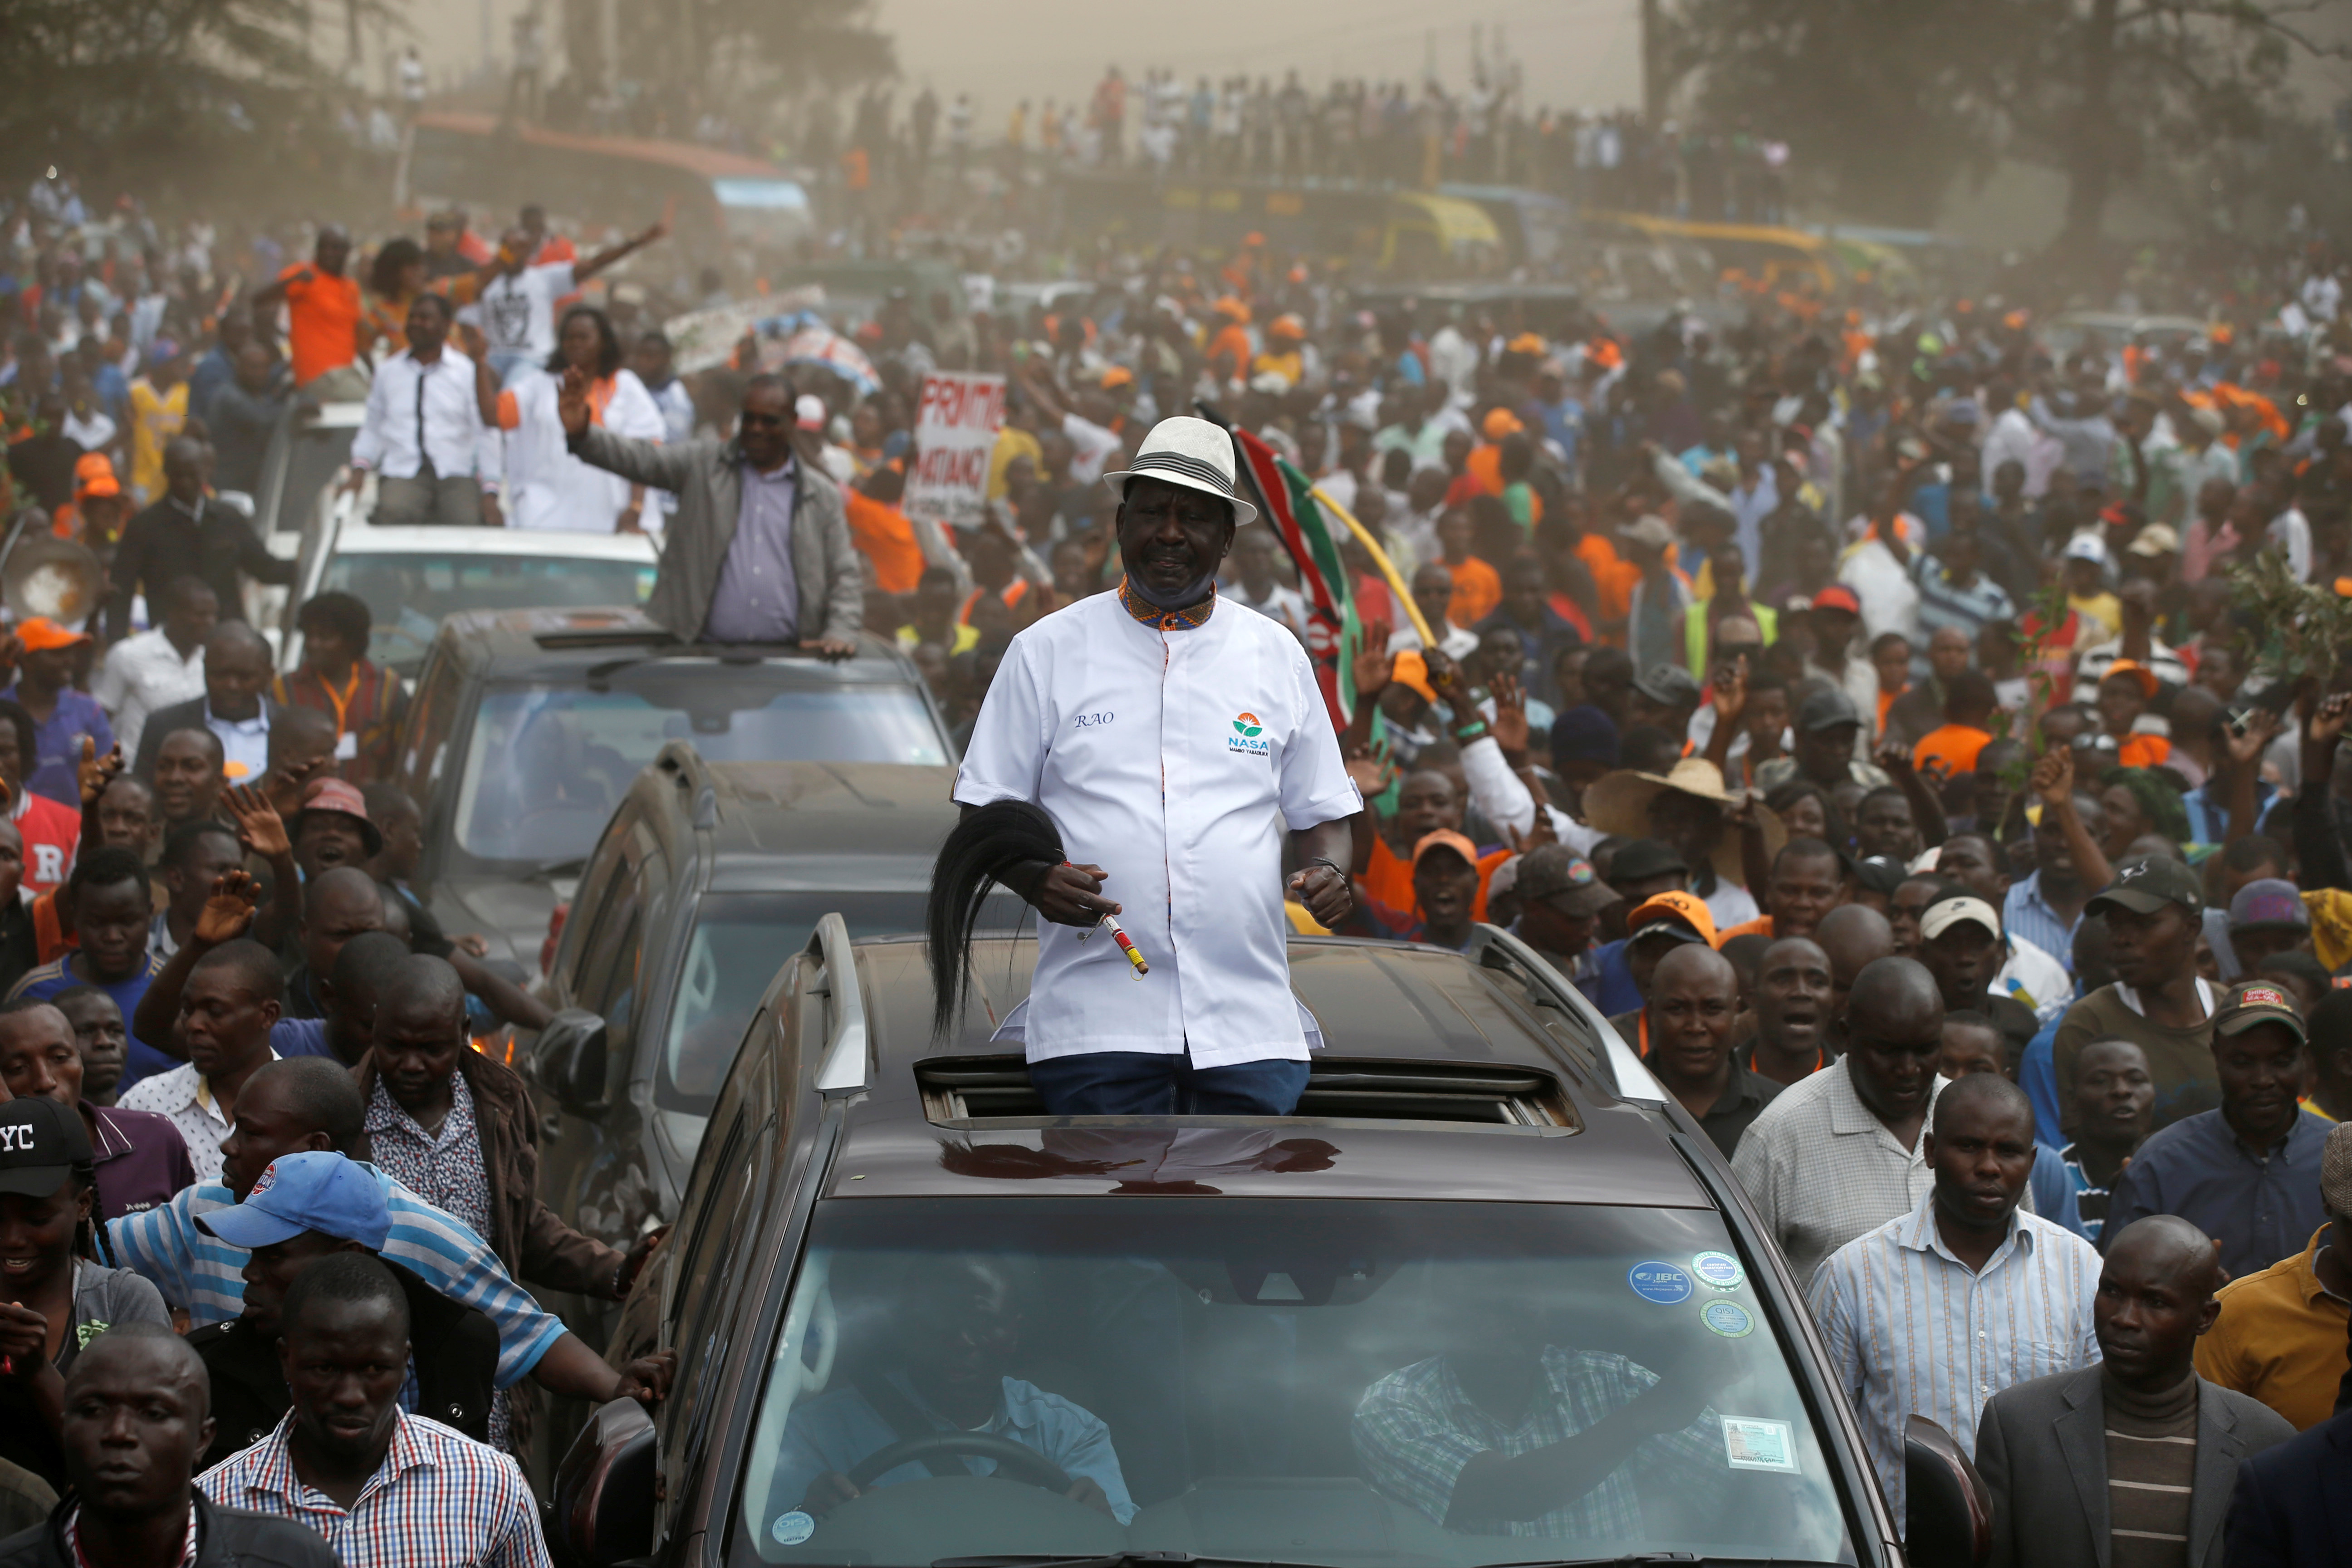 Kenyan opposition leader Raila Odinga, the presidential candidate of the National Super Alliance (NASA) coalition, arrives for a political rally at the Kamukunji grounds in Nairobi, Kenya, October 18, 2017.